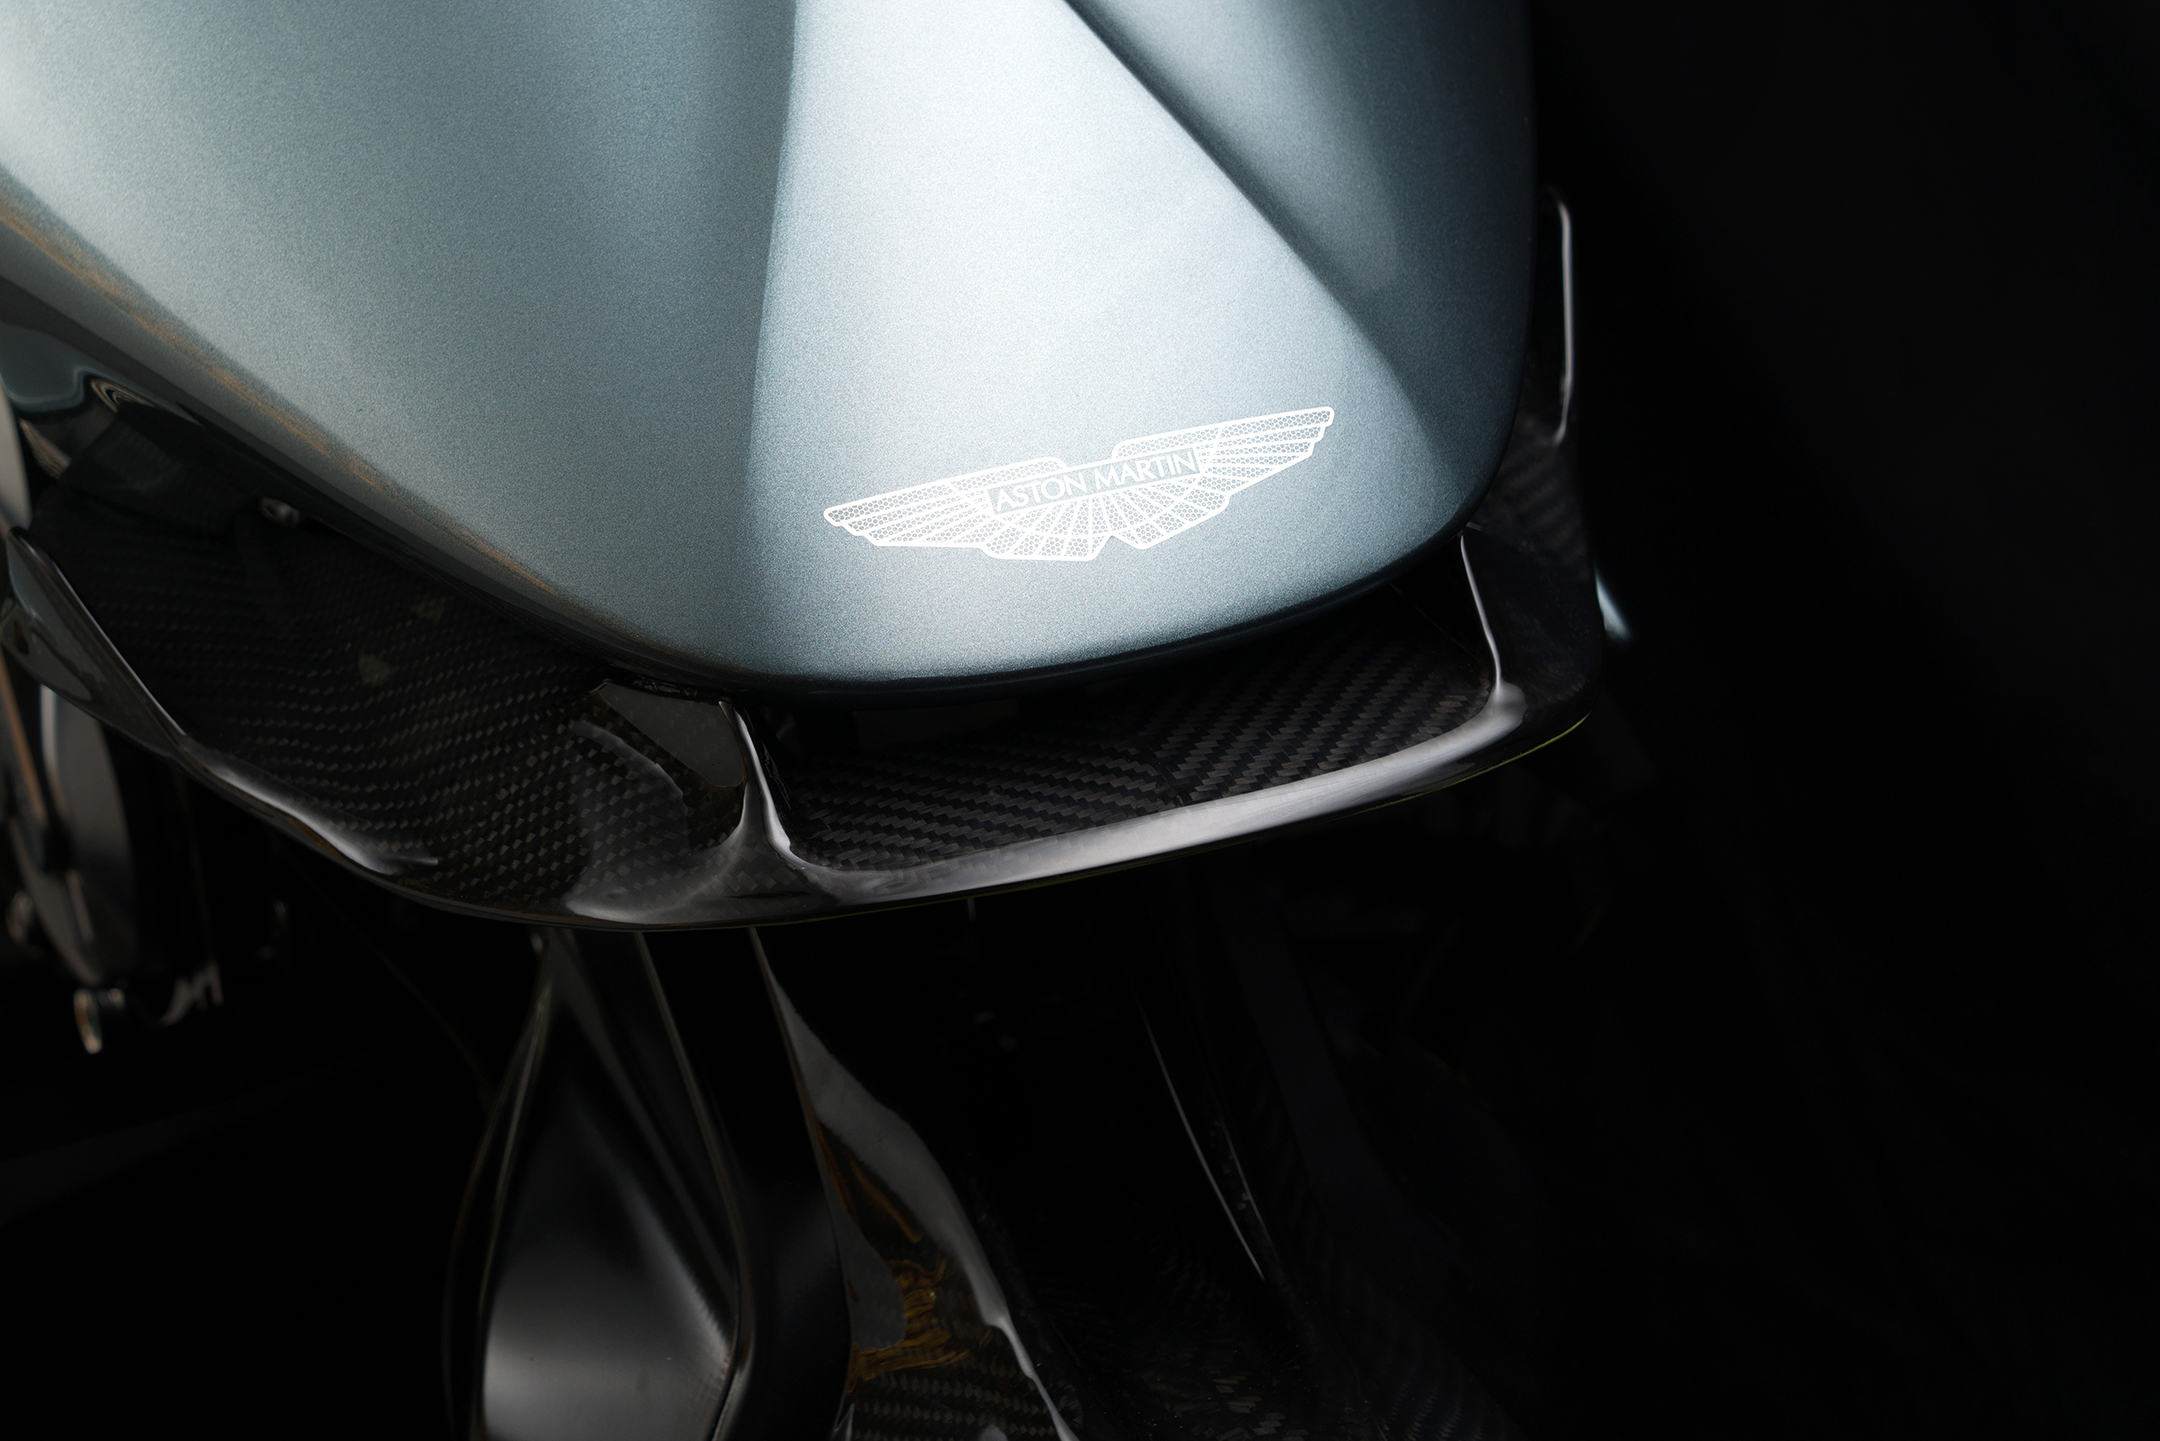 AMB 001 - Aston Martin & Brough Superior - 2019 - logo Wings